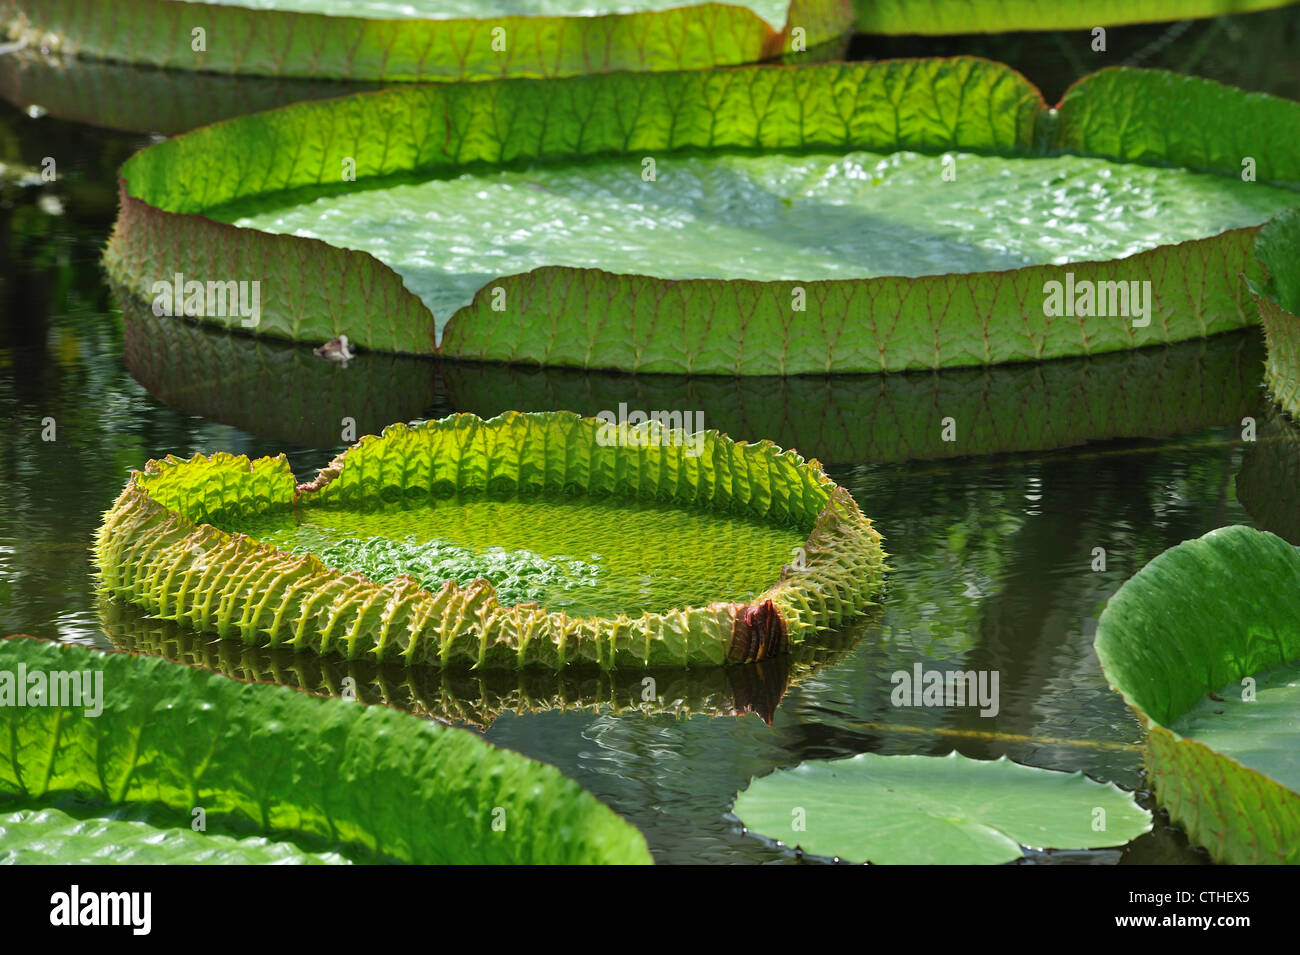 Giant water lily pads (Victoria amazonica corbanie / Victoria regia), native to South America, National Botanic - Stock Image